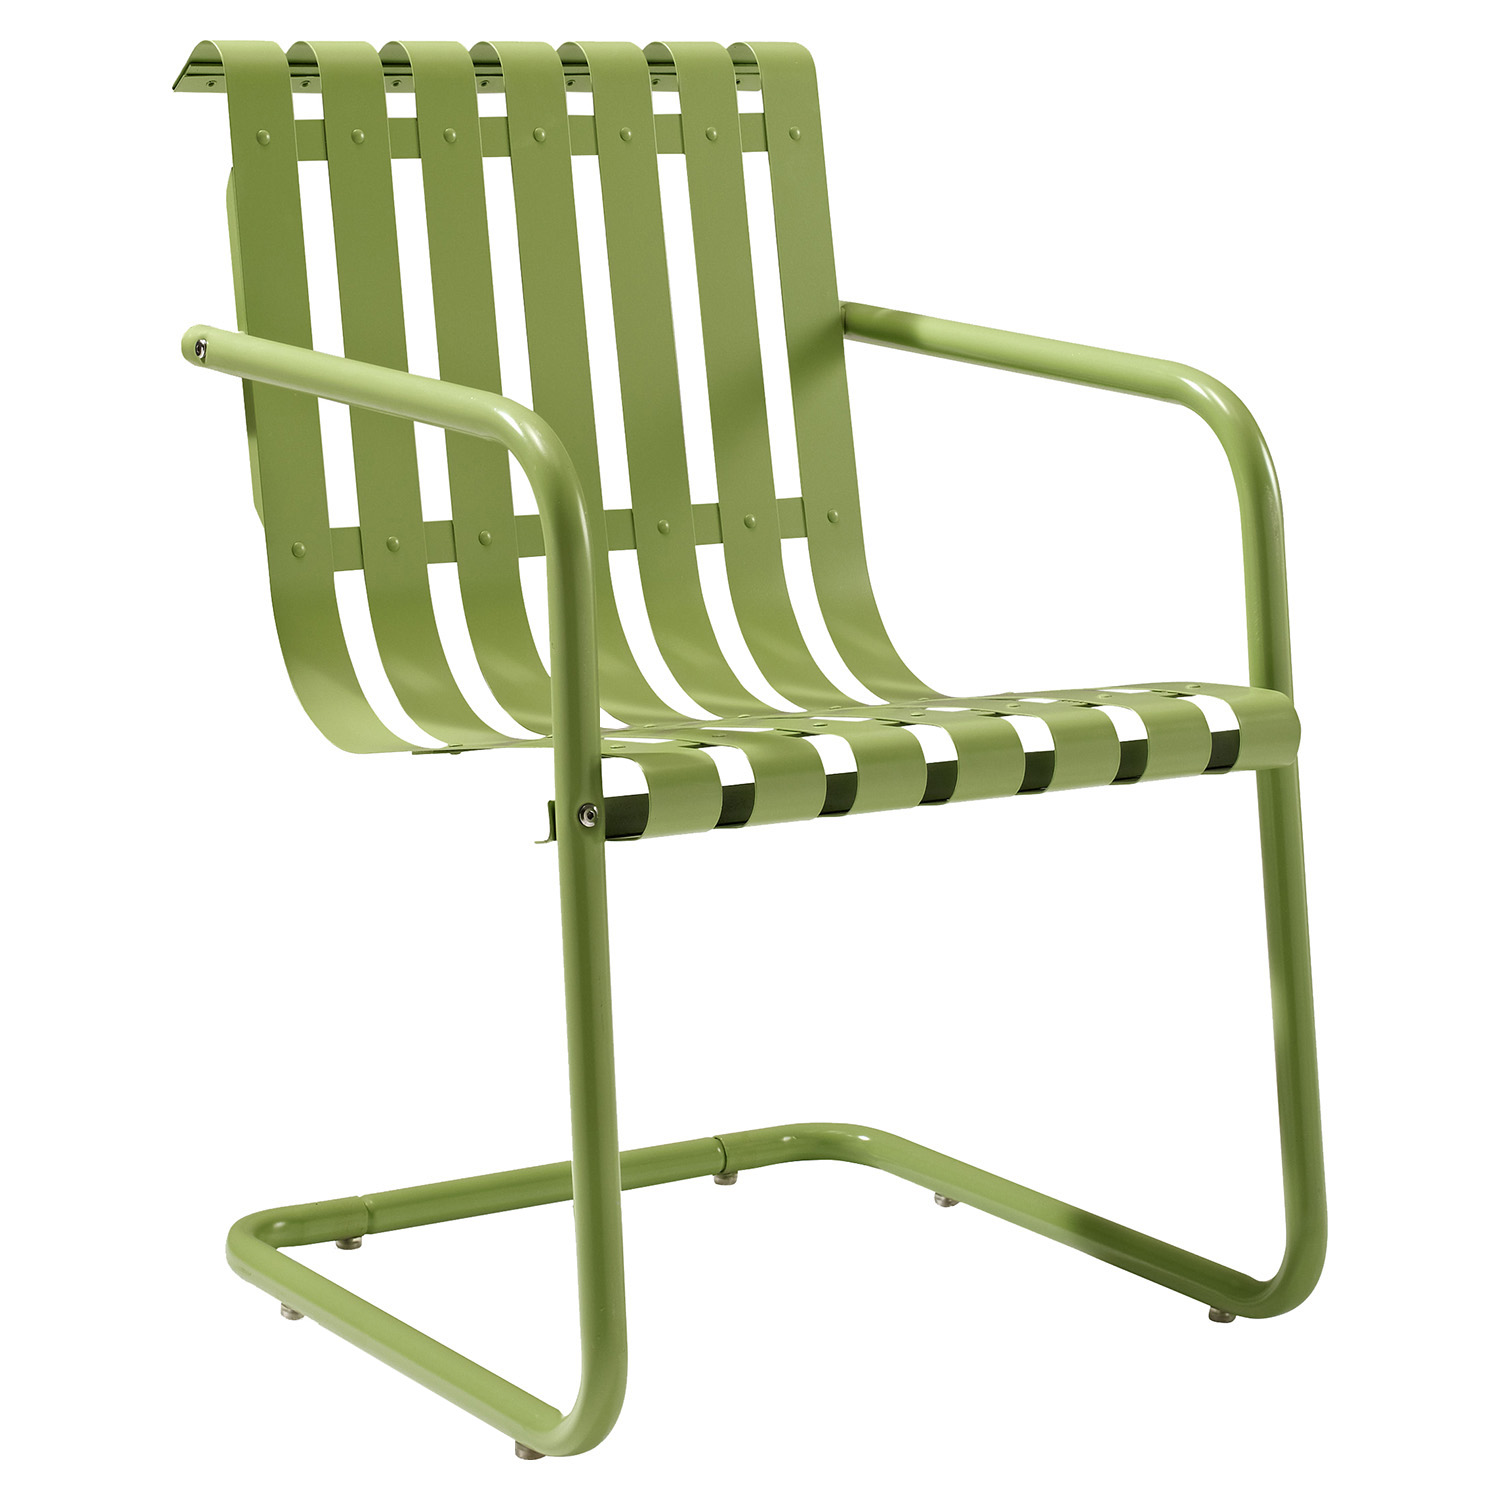 Gracie Retro Spring Chair - Oasis Green - CROS-CO1006A-GR